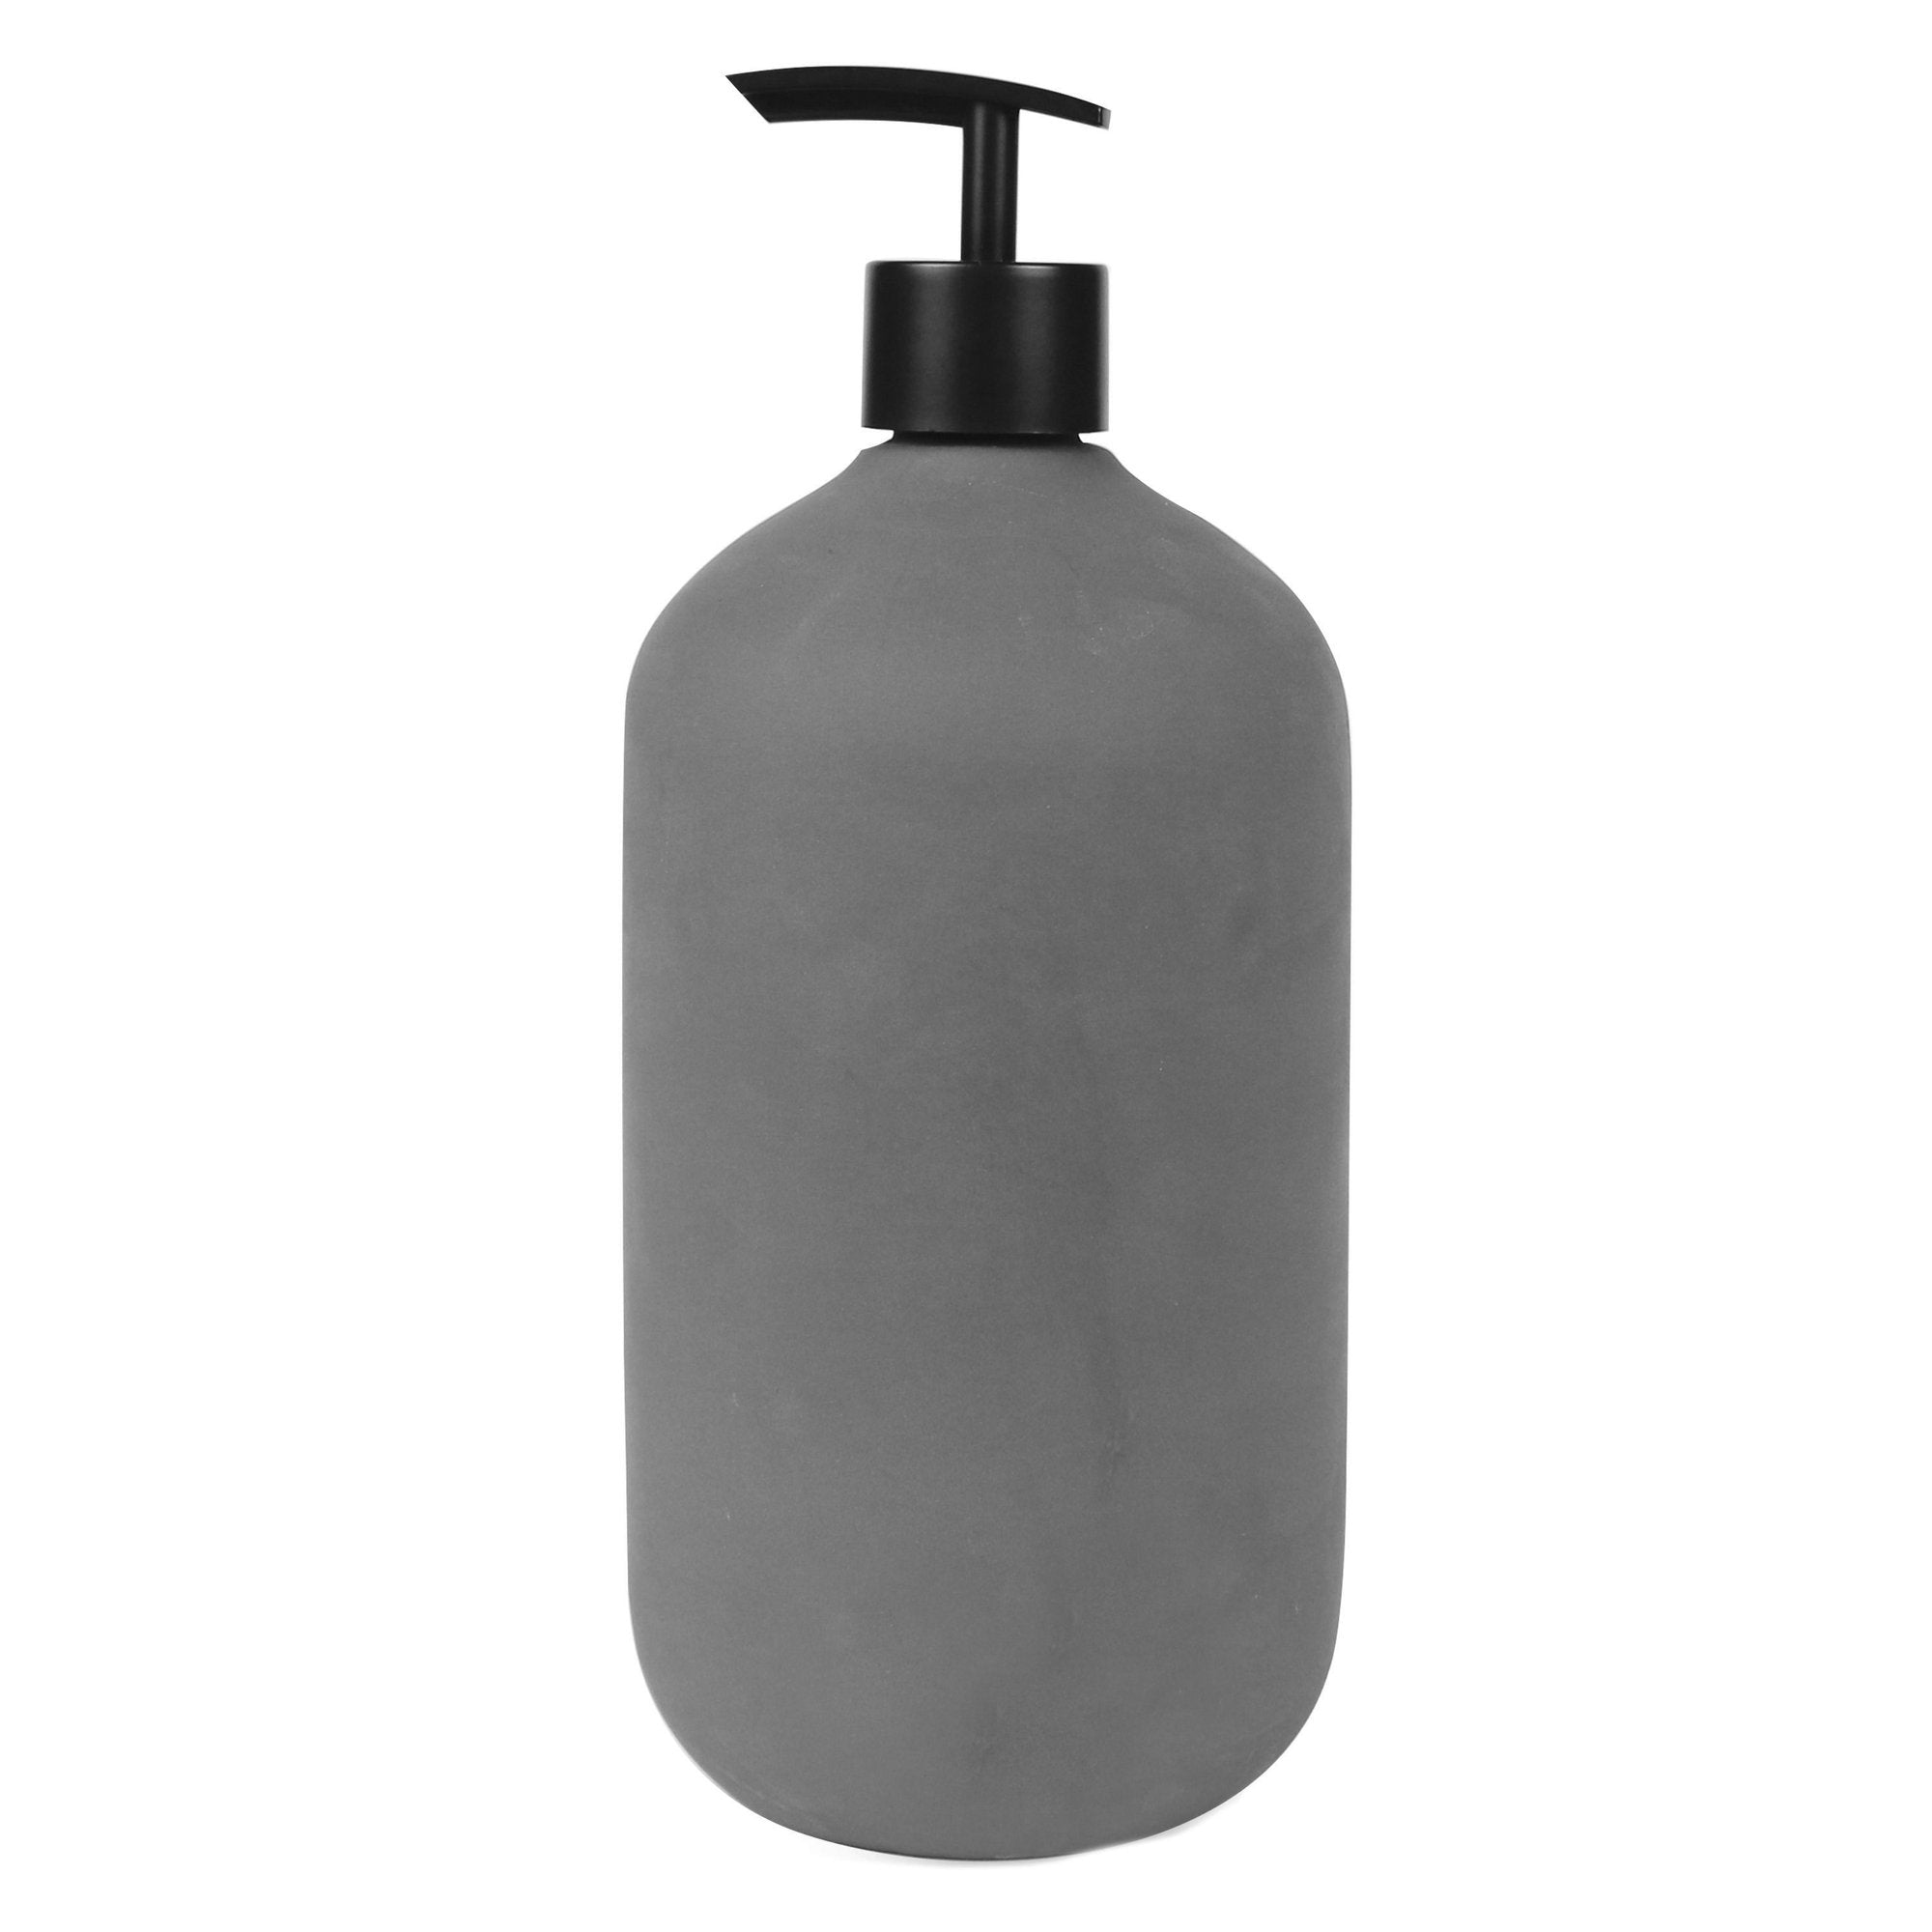 Pill Lotion Bottle - 1200ml Black